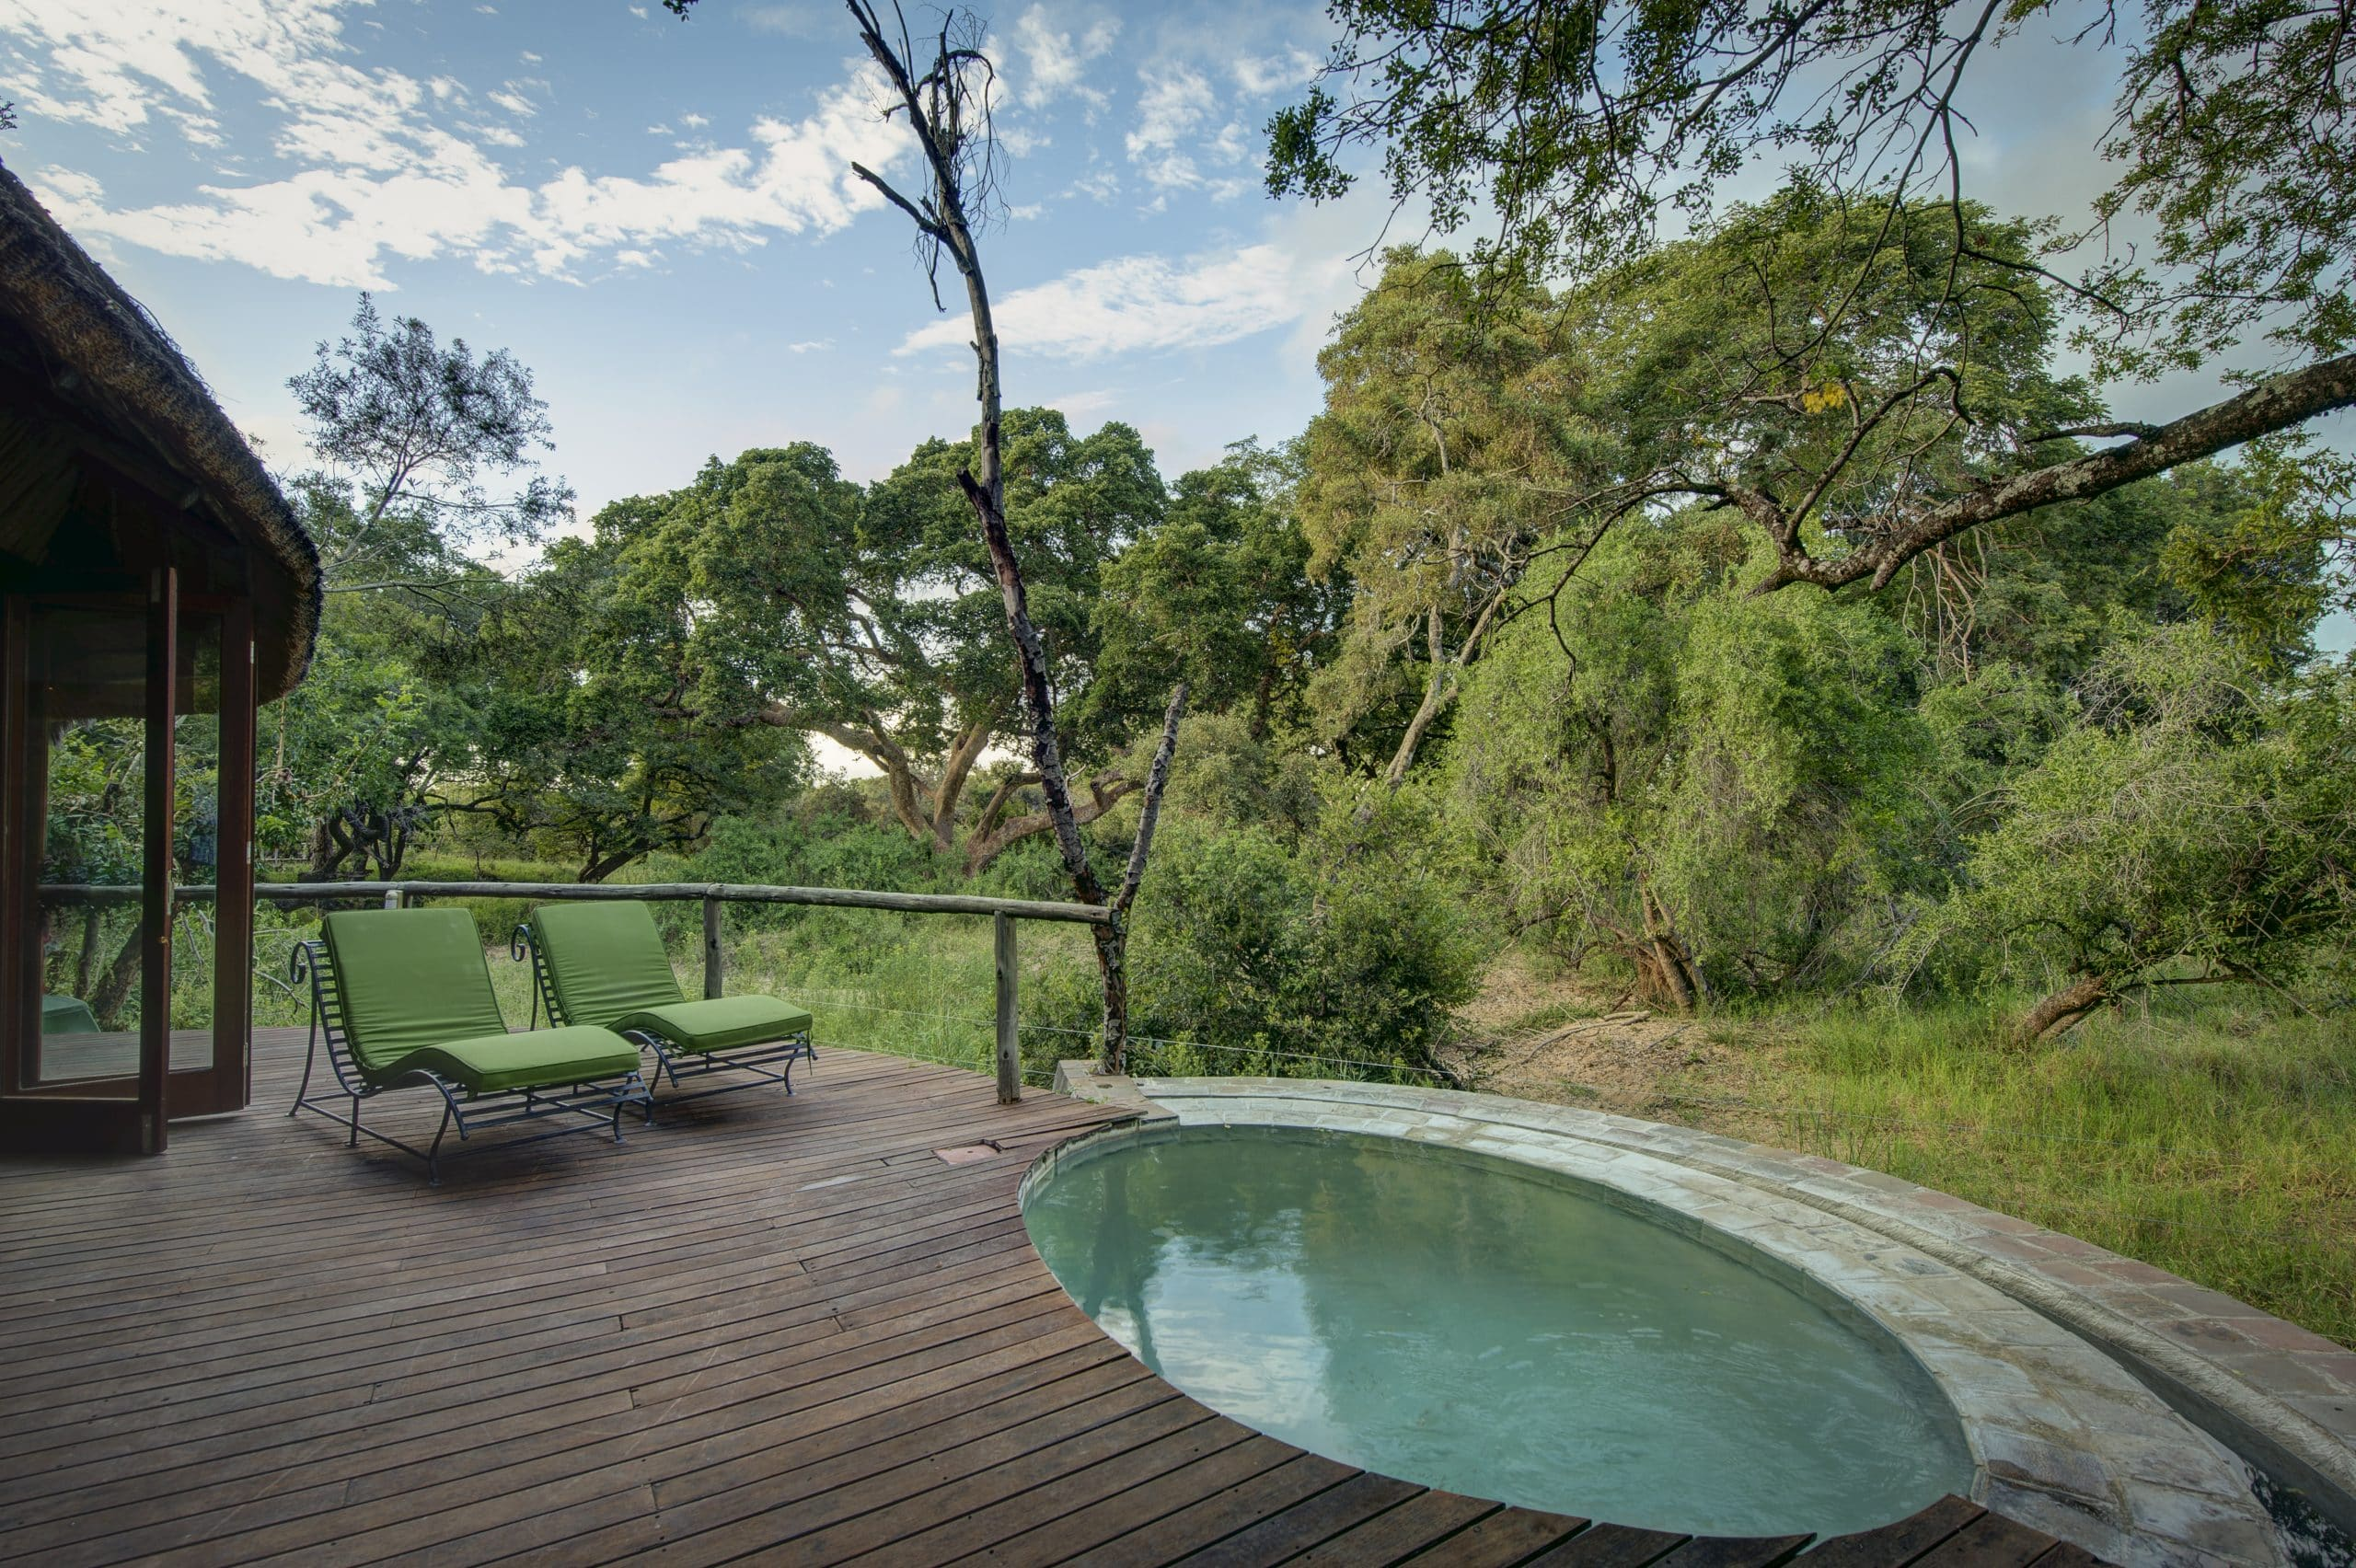 Suite plunge poo at Tintswalo Safari Lodge